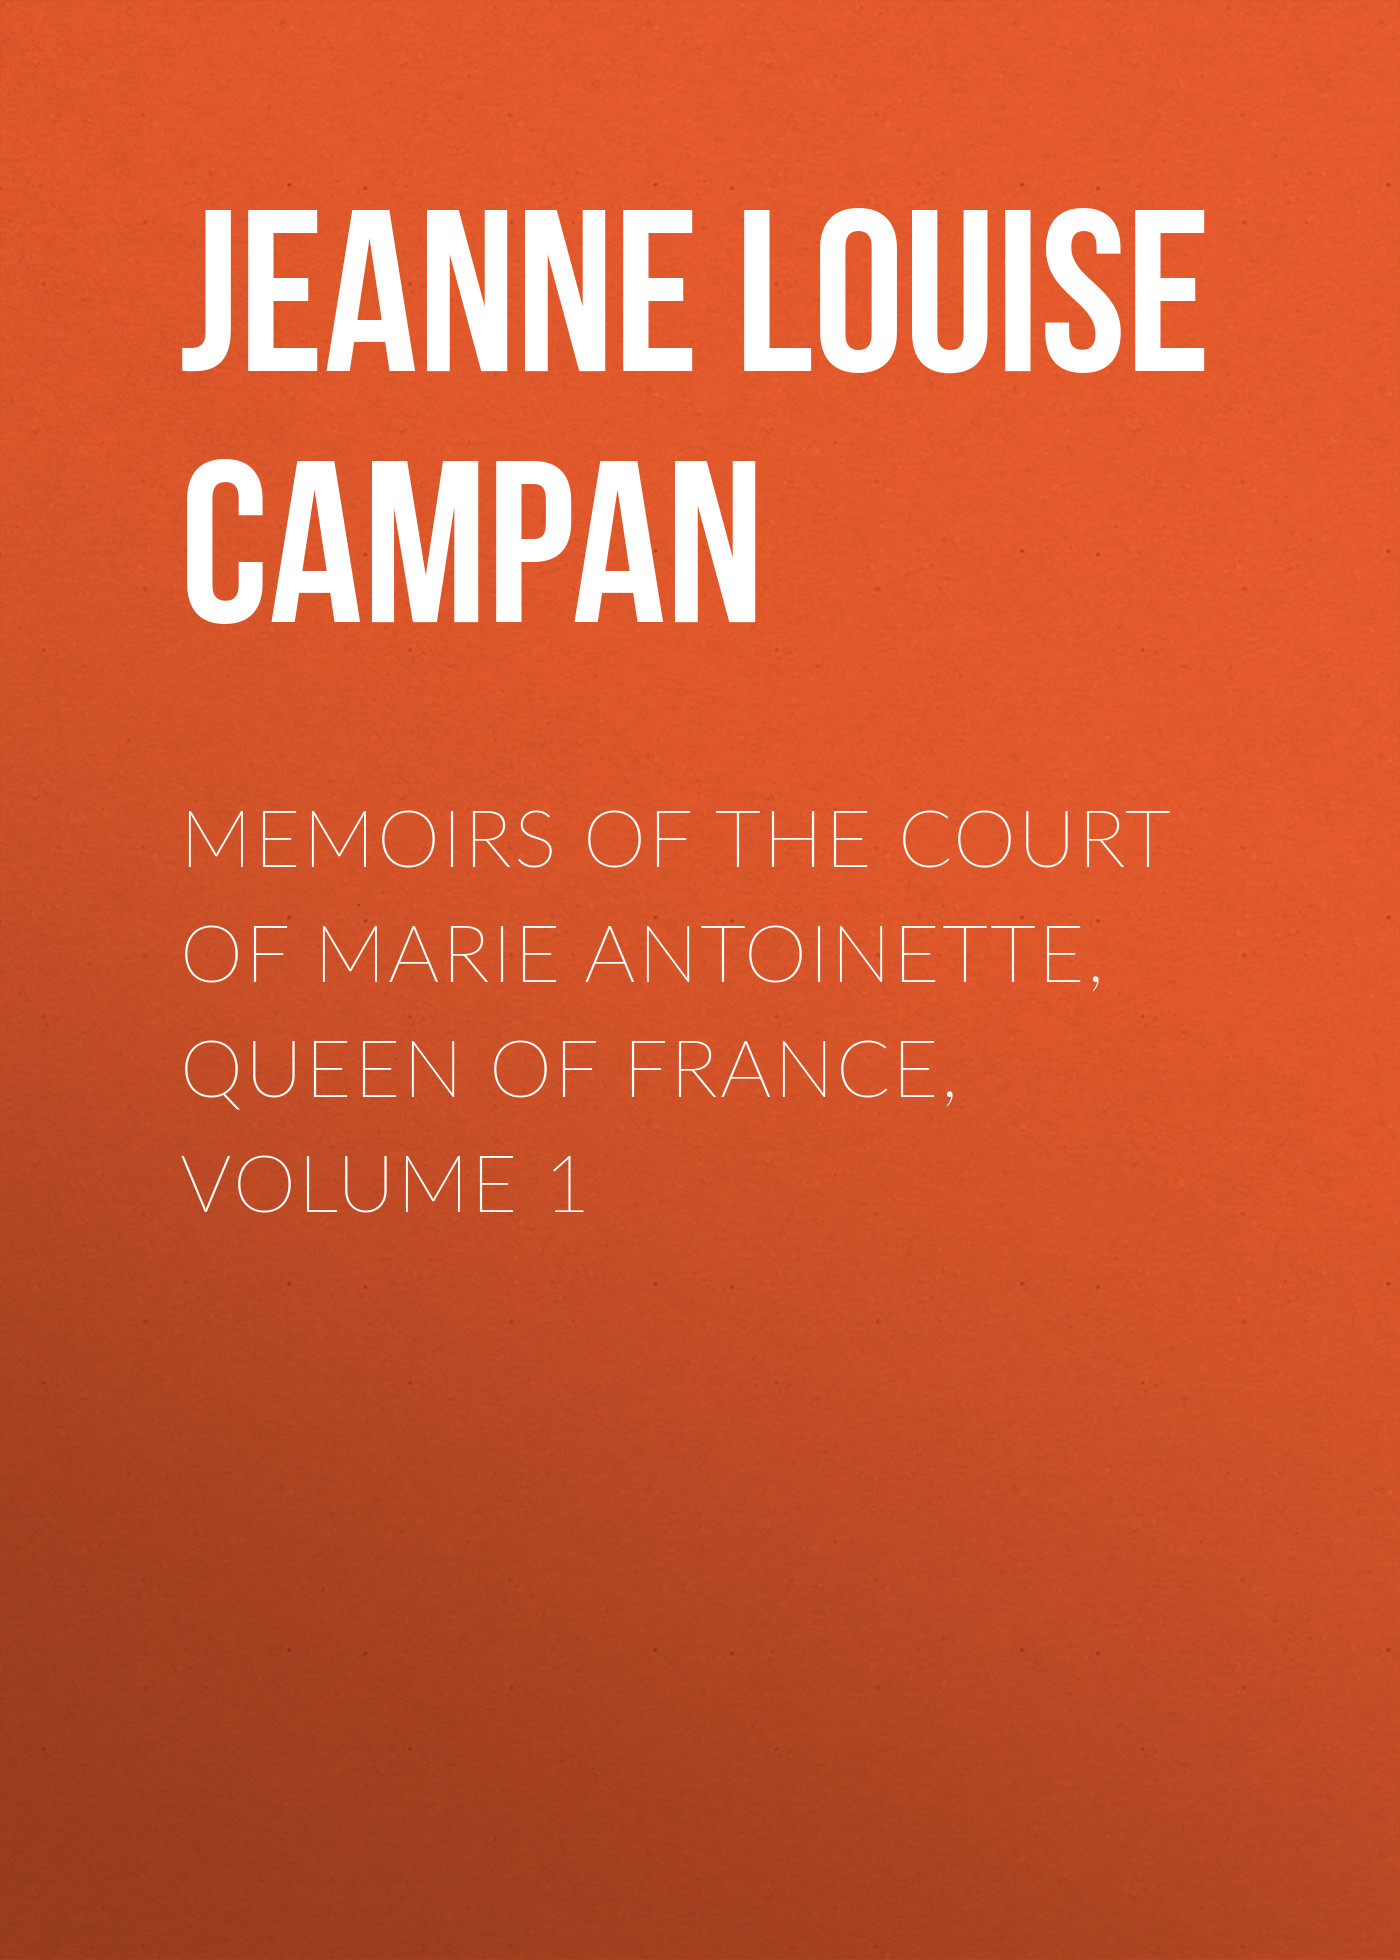 Jeanne Louise Henriette Campan Memoirs of the Court of Marie Antoinette, Queen of France, Volume 1